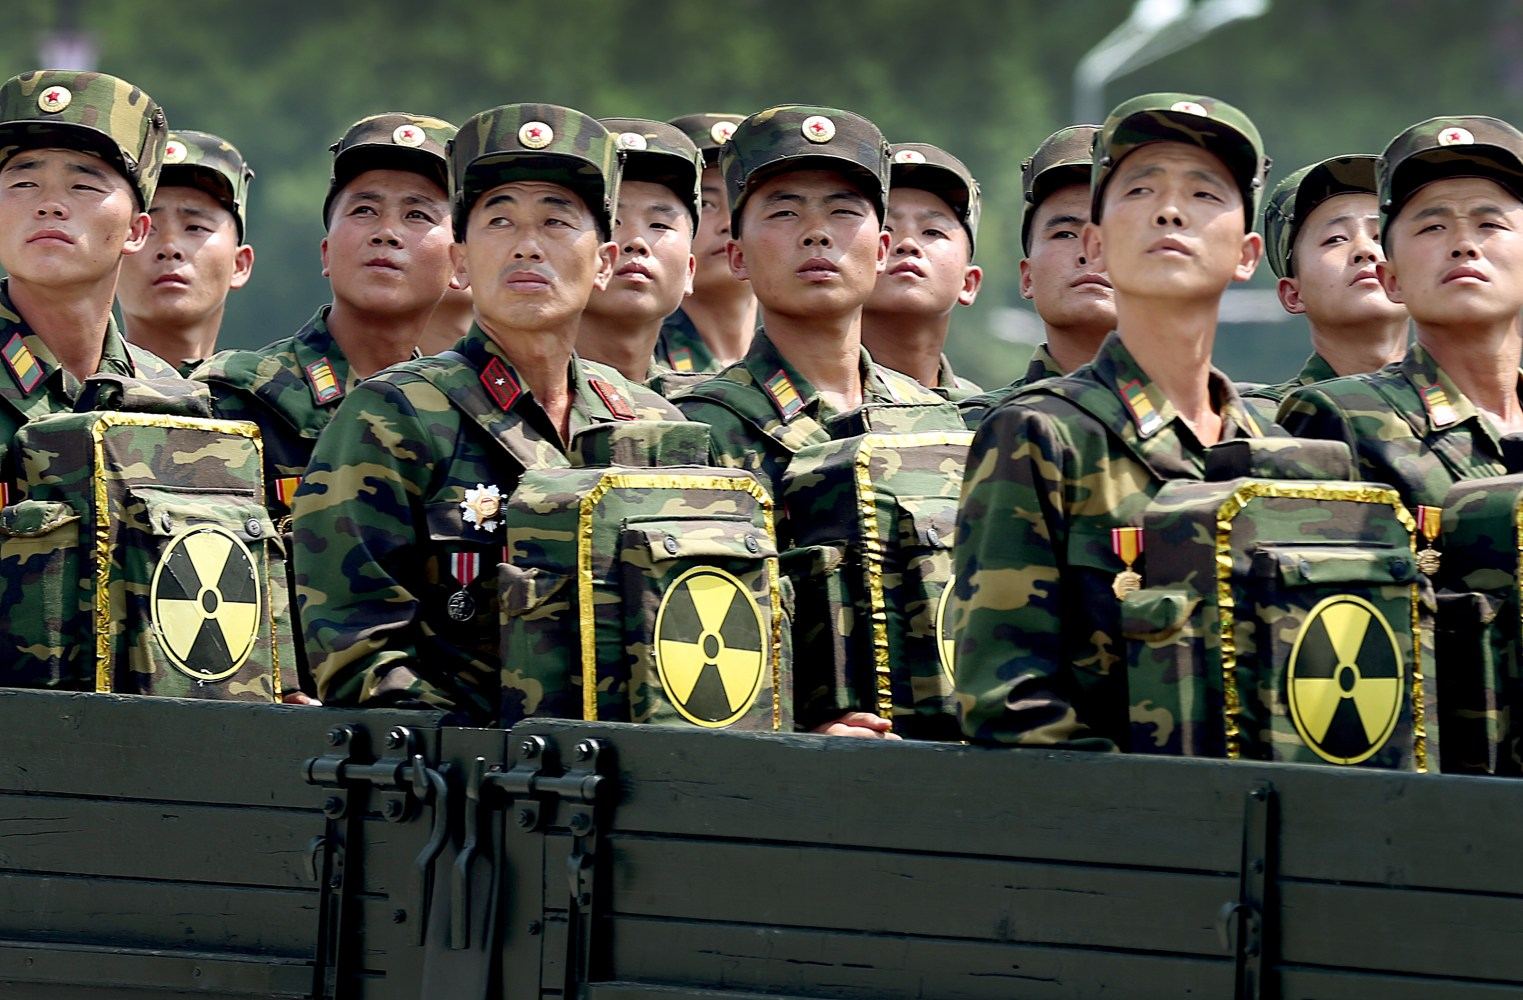 170413-north-korean-soldiers-cr-0554_a456b5dcb82898b37d47f2fe253c259e.nbcnews-ux-2880-1000.jpg